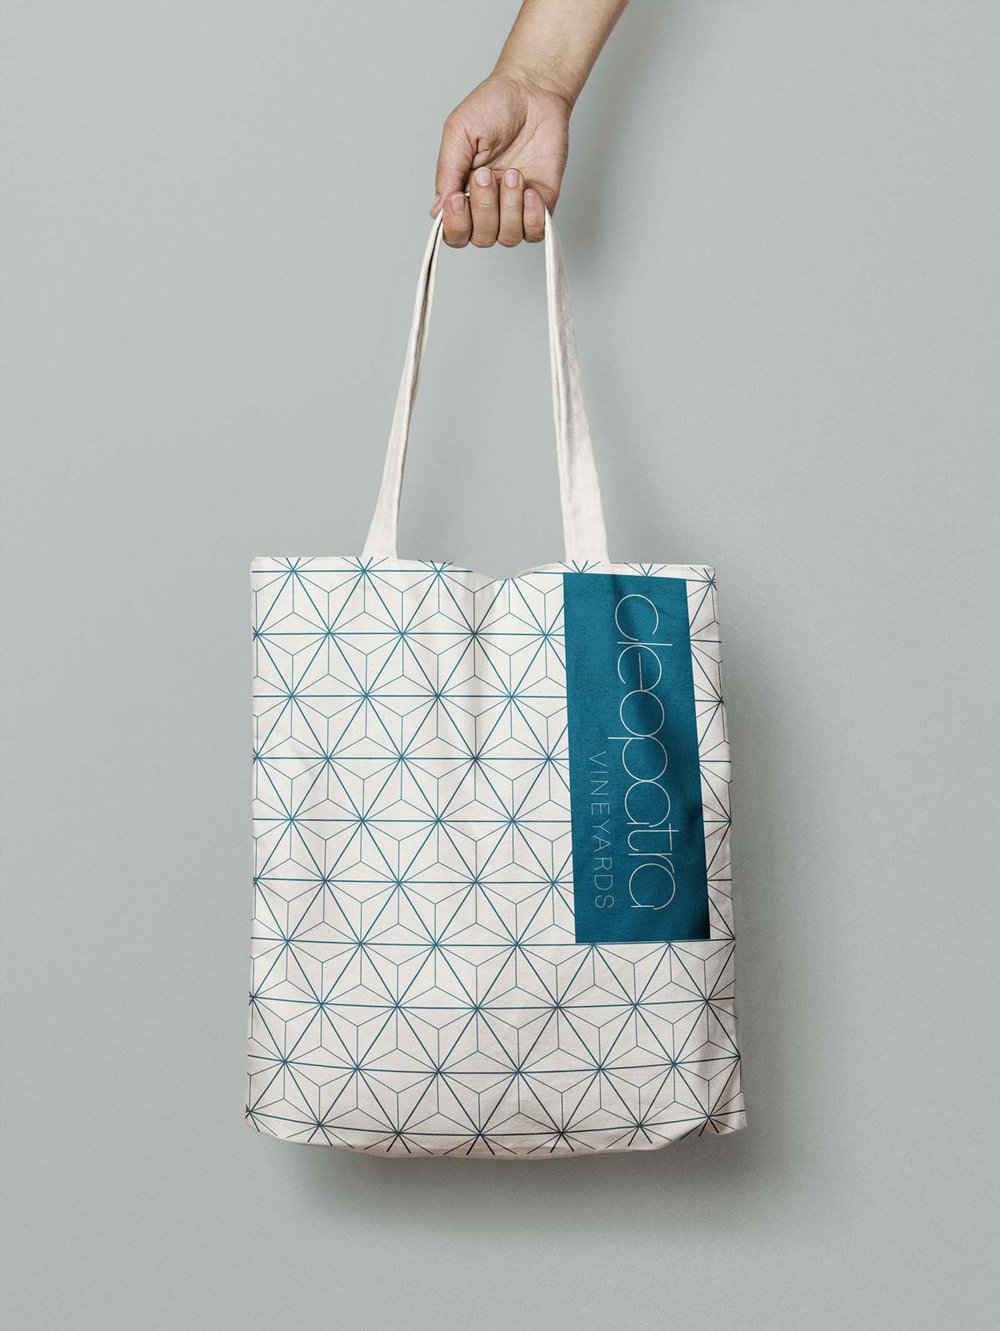 cleopatra brand identity canvas tote bag